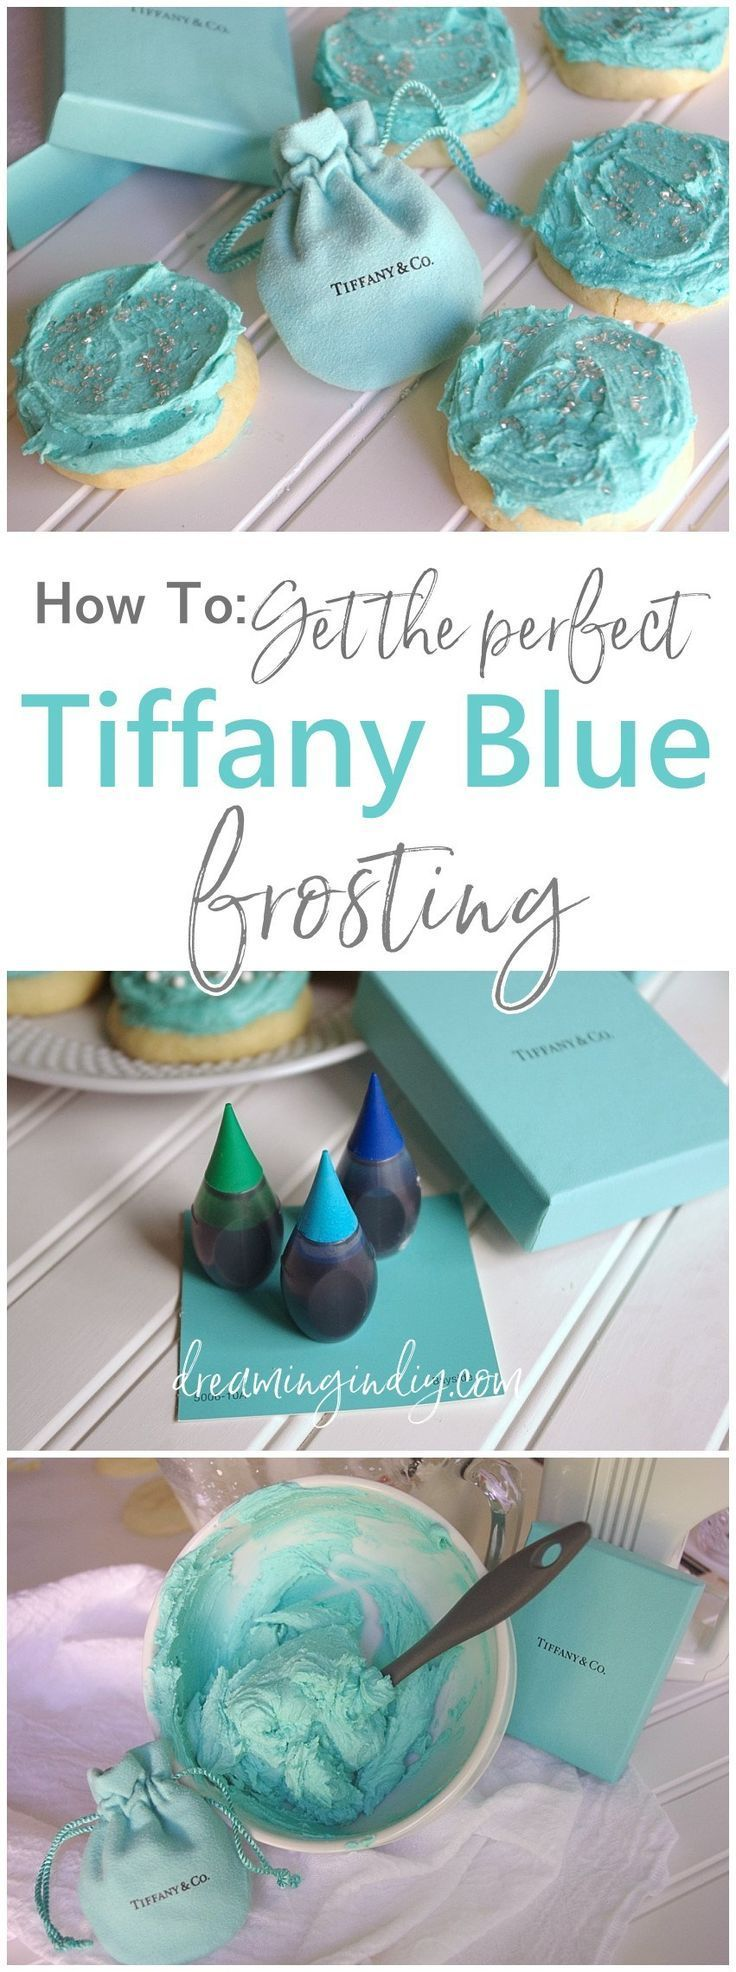 How To Get the Perfect Shade of Tiffany Blue Colored Frosting for Cookies, Cakes, Cupcakes and Desserts - Step by Step Tips, Tricks and Easy Color Matching Advice - perfect for Weddings, Bridal Showers and Baby Showers! By Dreaming in DIY